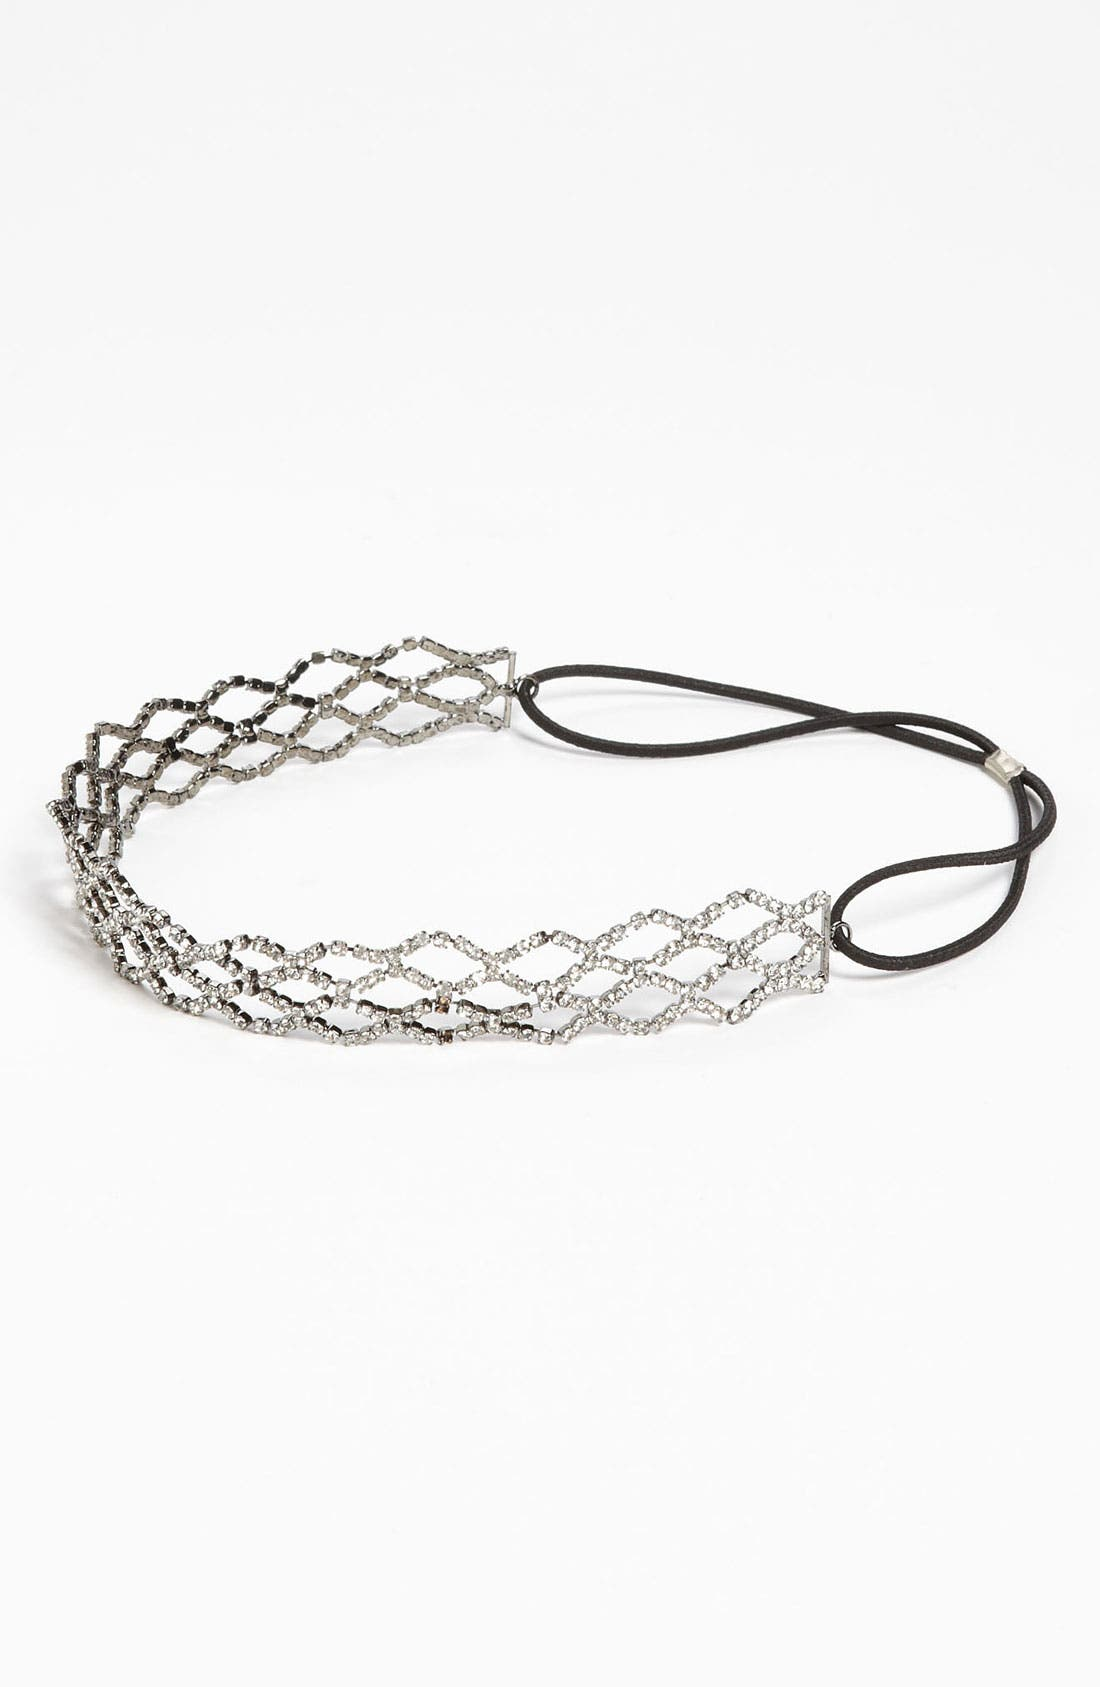 Alternate Image 1 Selected - BP. Rhinestone Lattice Headband